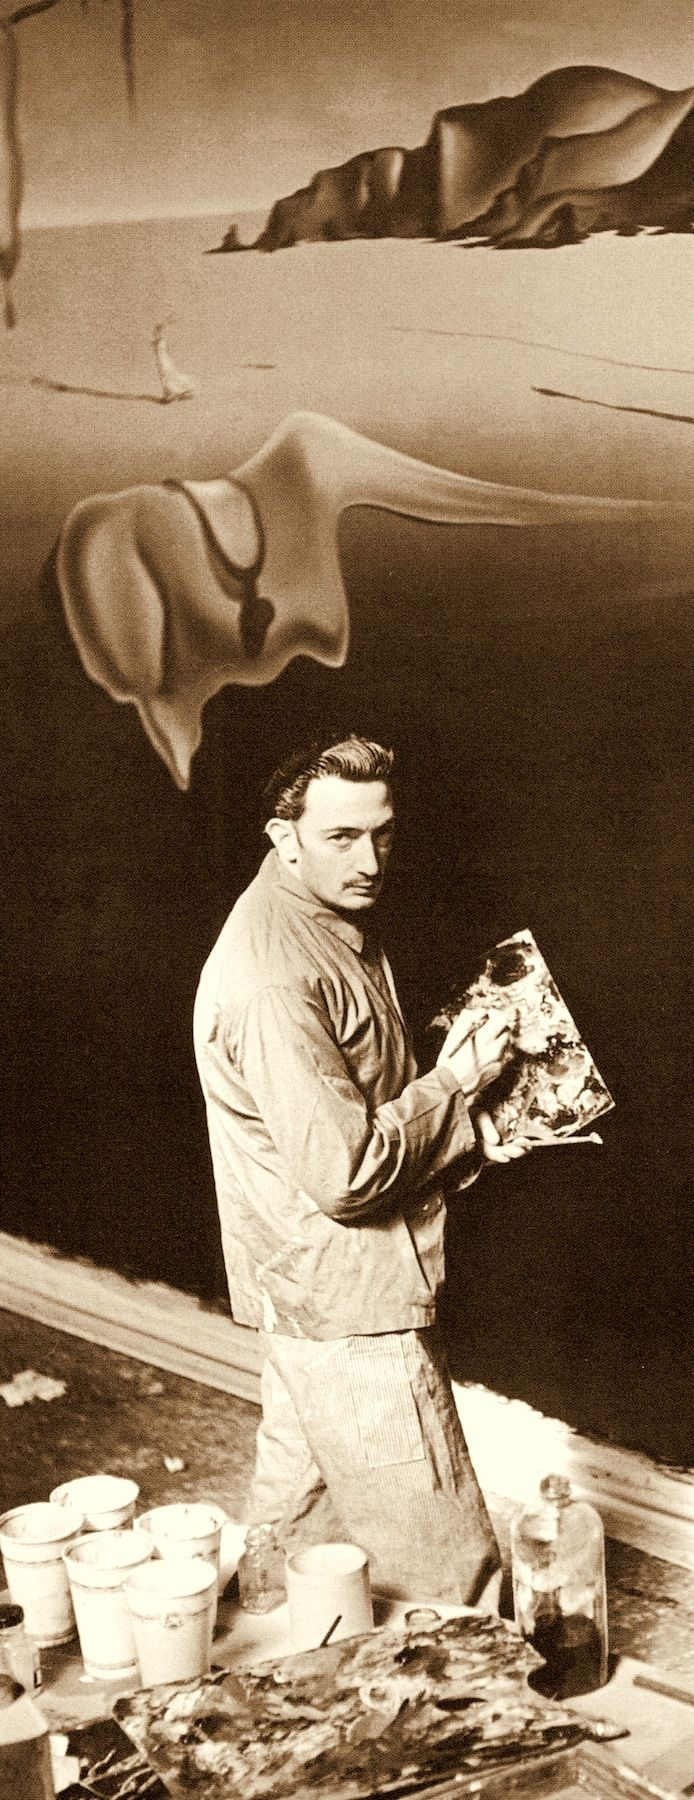 "SALVADOR DALI painting a wall facade of limp watches for his 'DREAM OF VENUS"" funhouse pavilion for adults only. At The 1939 World's Fair. from the book Salvador Dali's Dream of Venus: The Surrealist Funhouse by Ingrid Schaffner with Photos by ERIC SCHAAL. 2002 (please follow minkshmink on pinterest)"